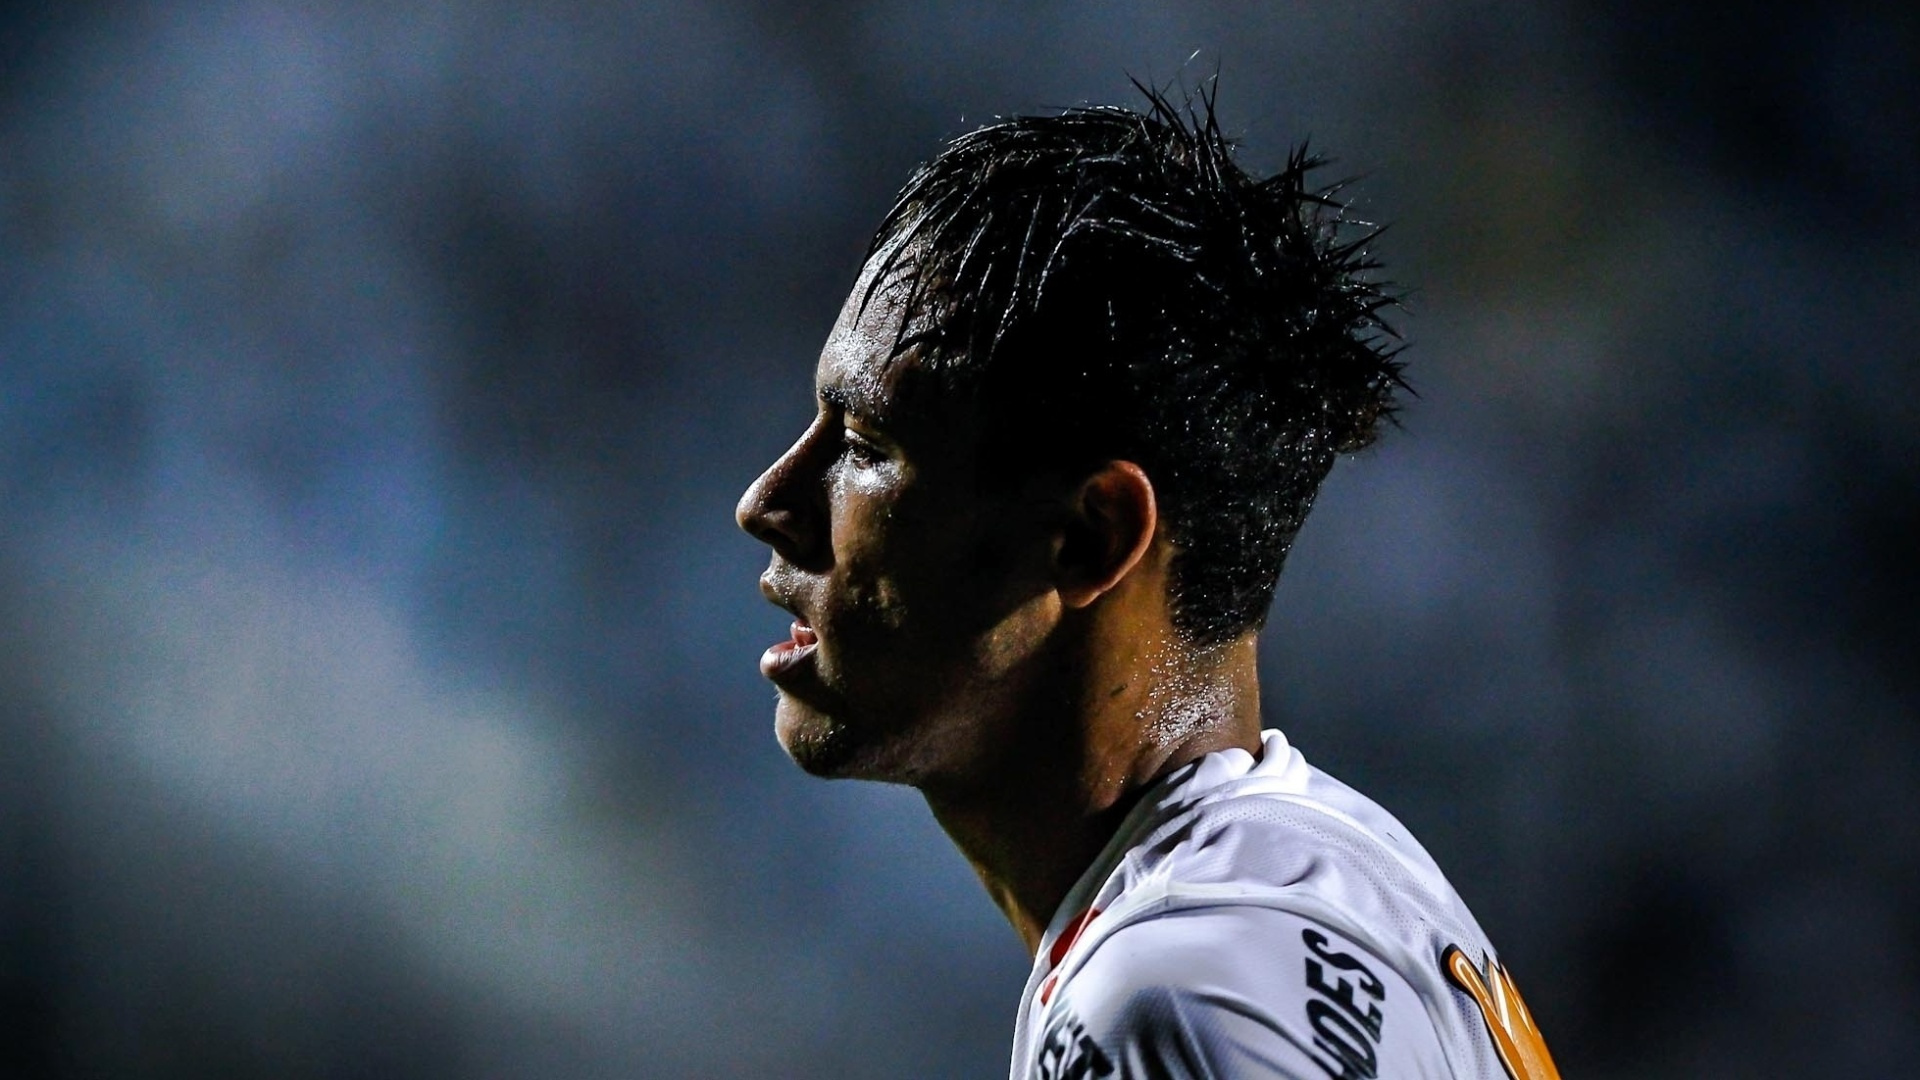 16.jan.2013 - Neymar jogou apenas por 45 minutos no amistoso entre Santos e Grmio Barueri